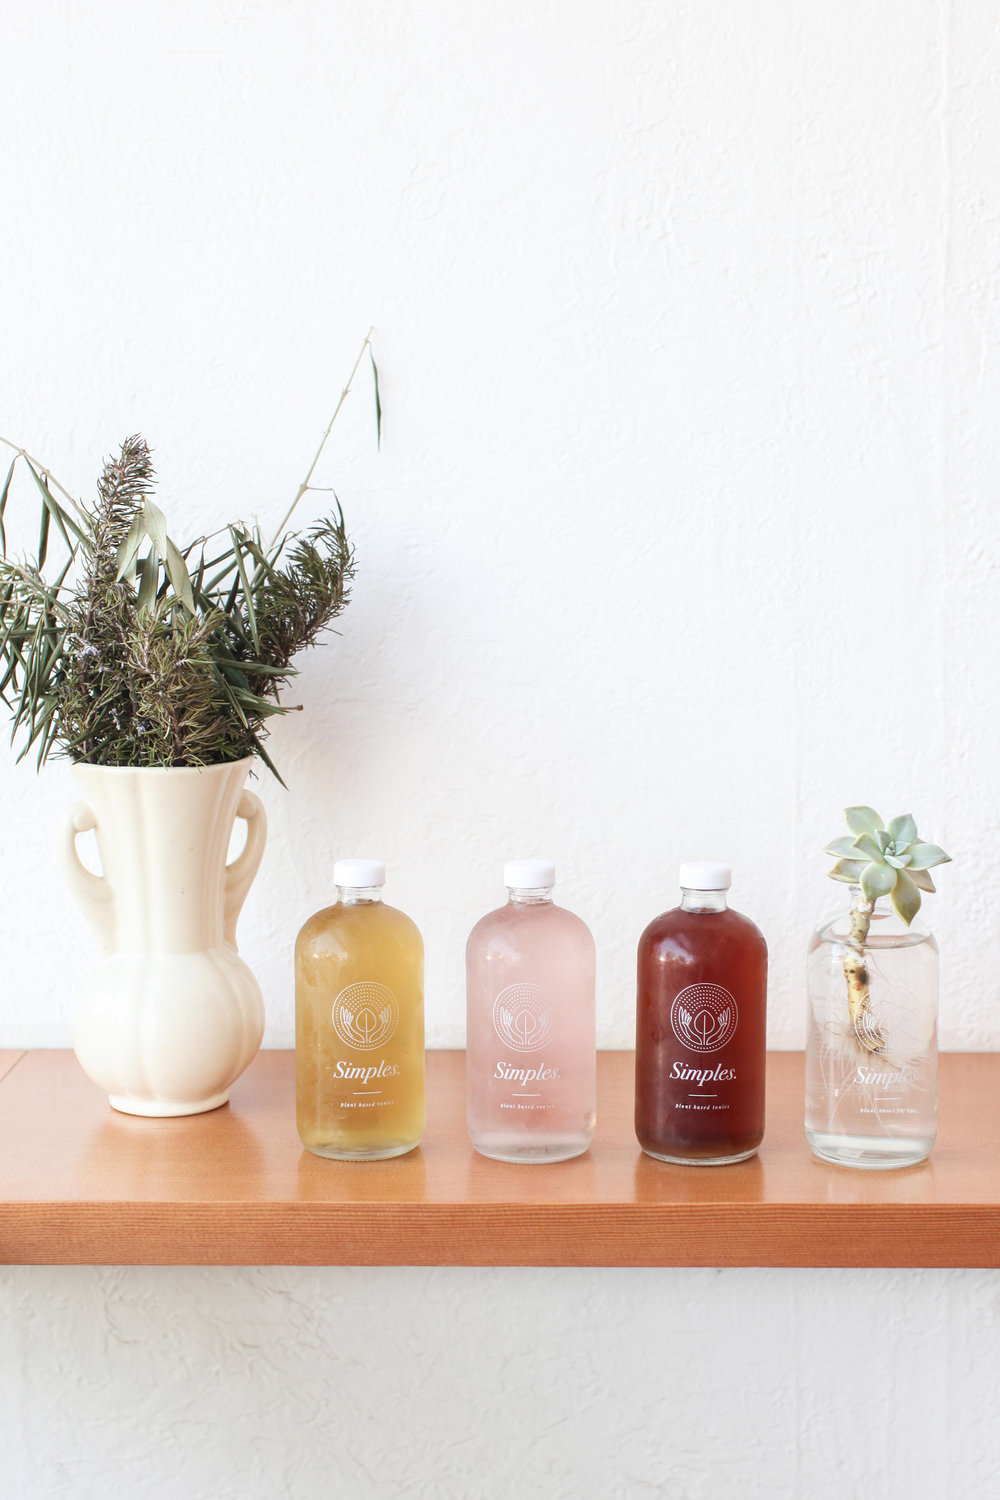 Simple Tonics by Traci Donat | Shares Her Personal Journey with Plant as Medicine.